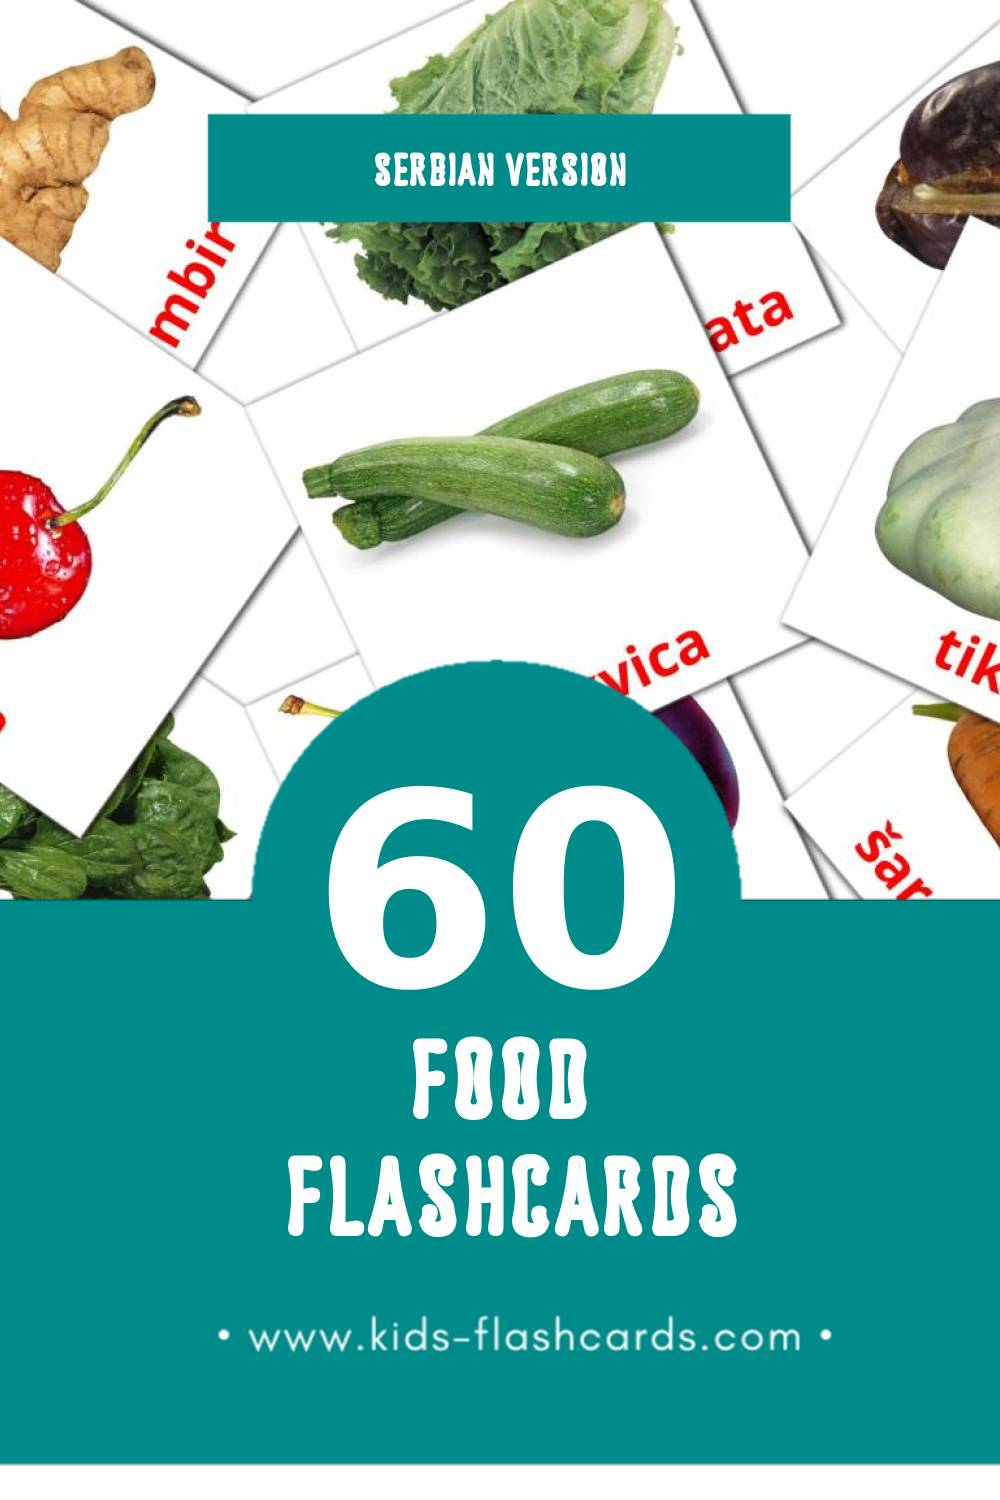 Visual povrce Flashcards for Toddlers (49 cards in Serbian)